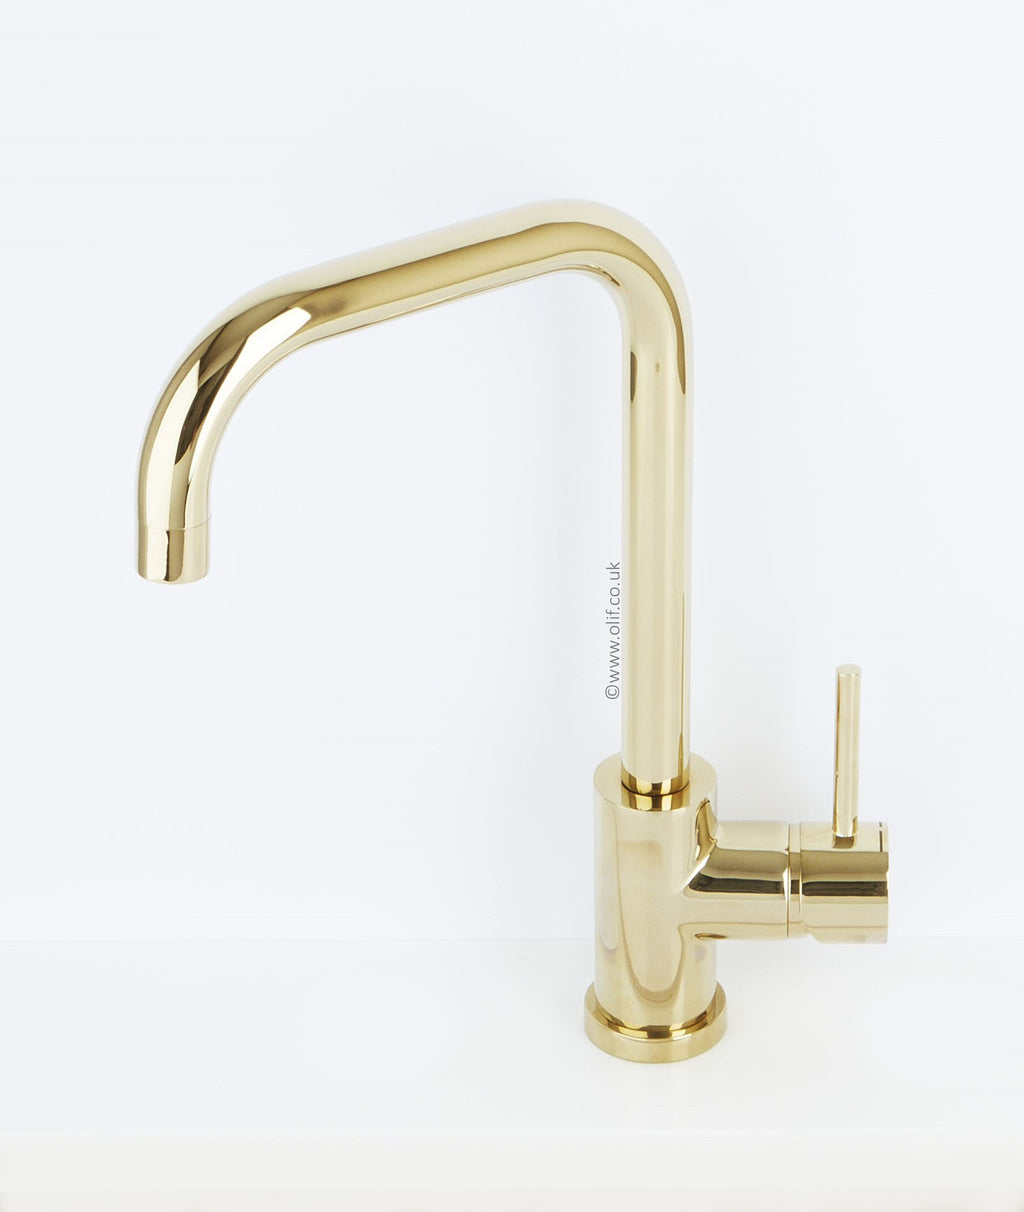 Alveus Delfino Gold, kitchen mixer tap - Factory Seconds (40%Discount) Tap A